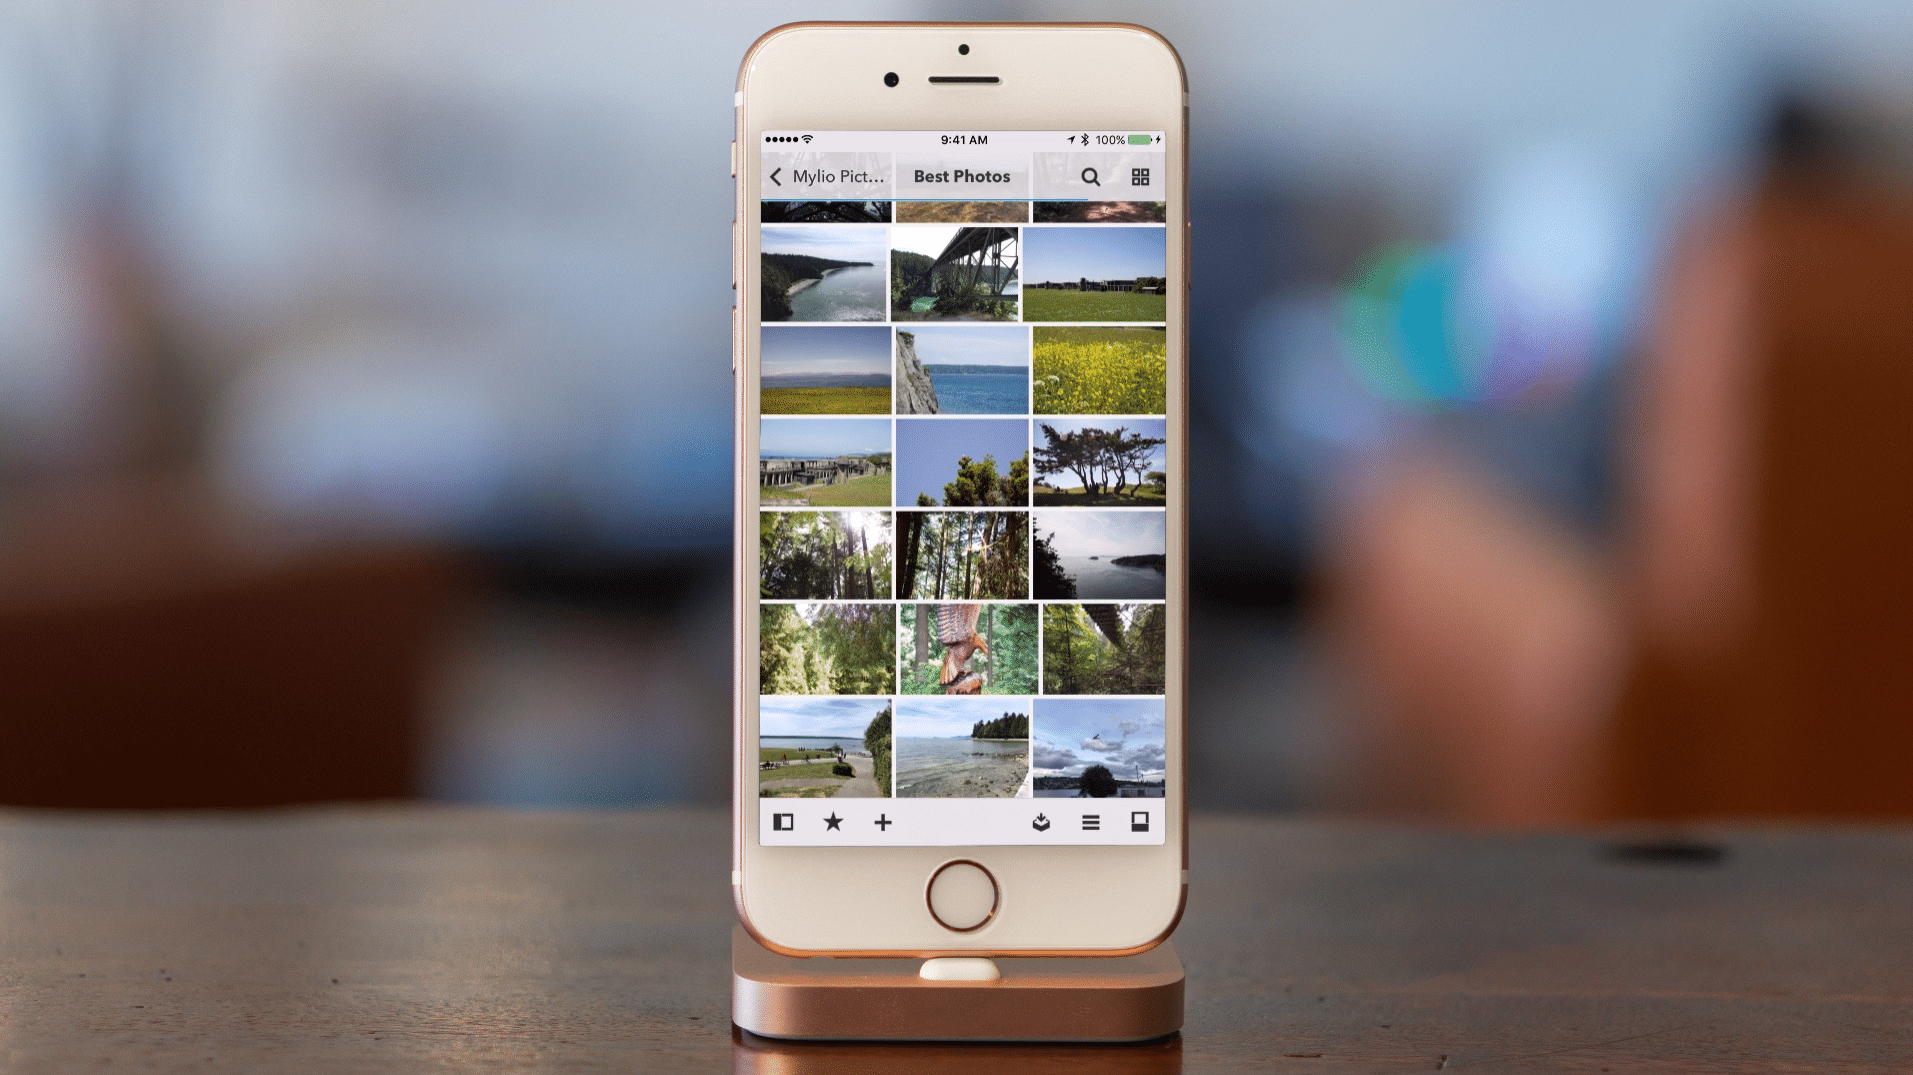 organizing photos, organizing pictures, how to organize photos, photo organization, photo storage, smartphone photography tips // In this guest post Caroline Guntur, the Swedisch Organizer, guides you through organising your smartphone photos.